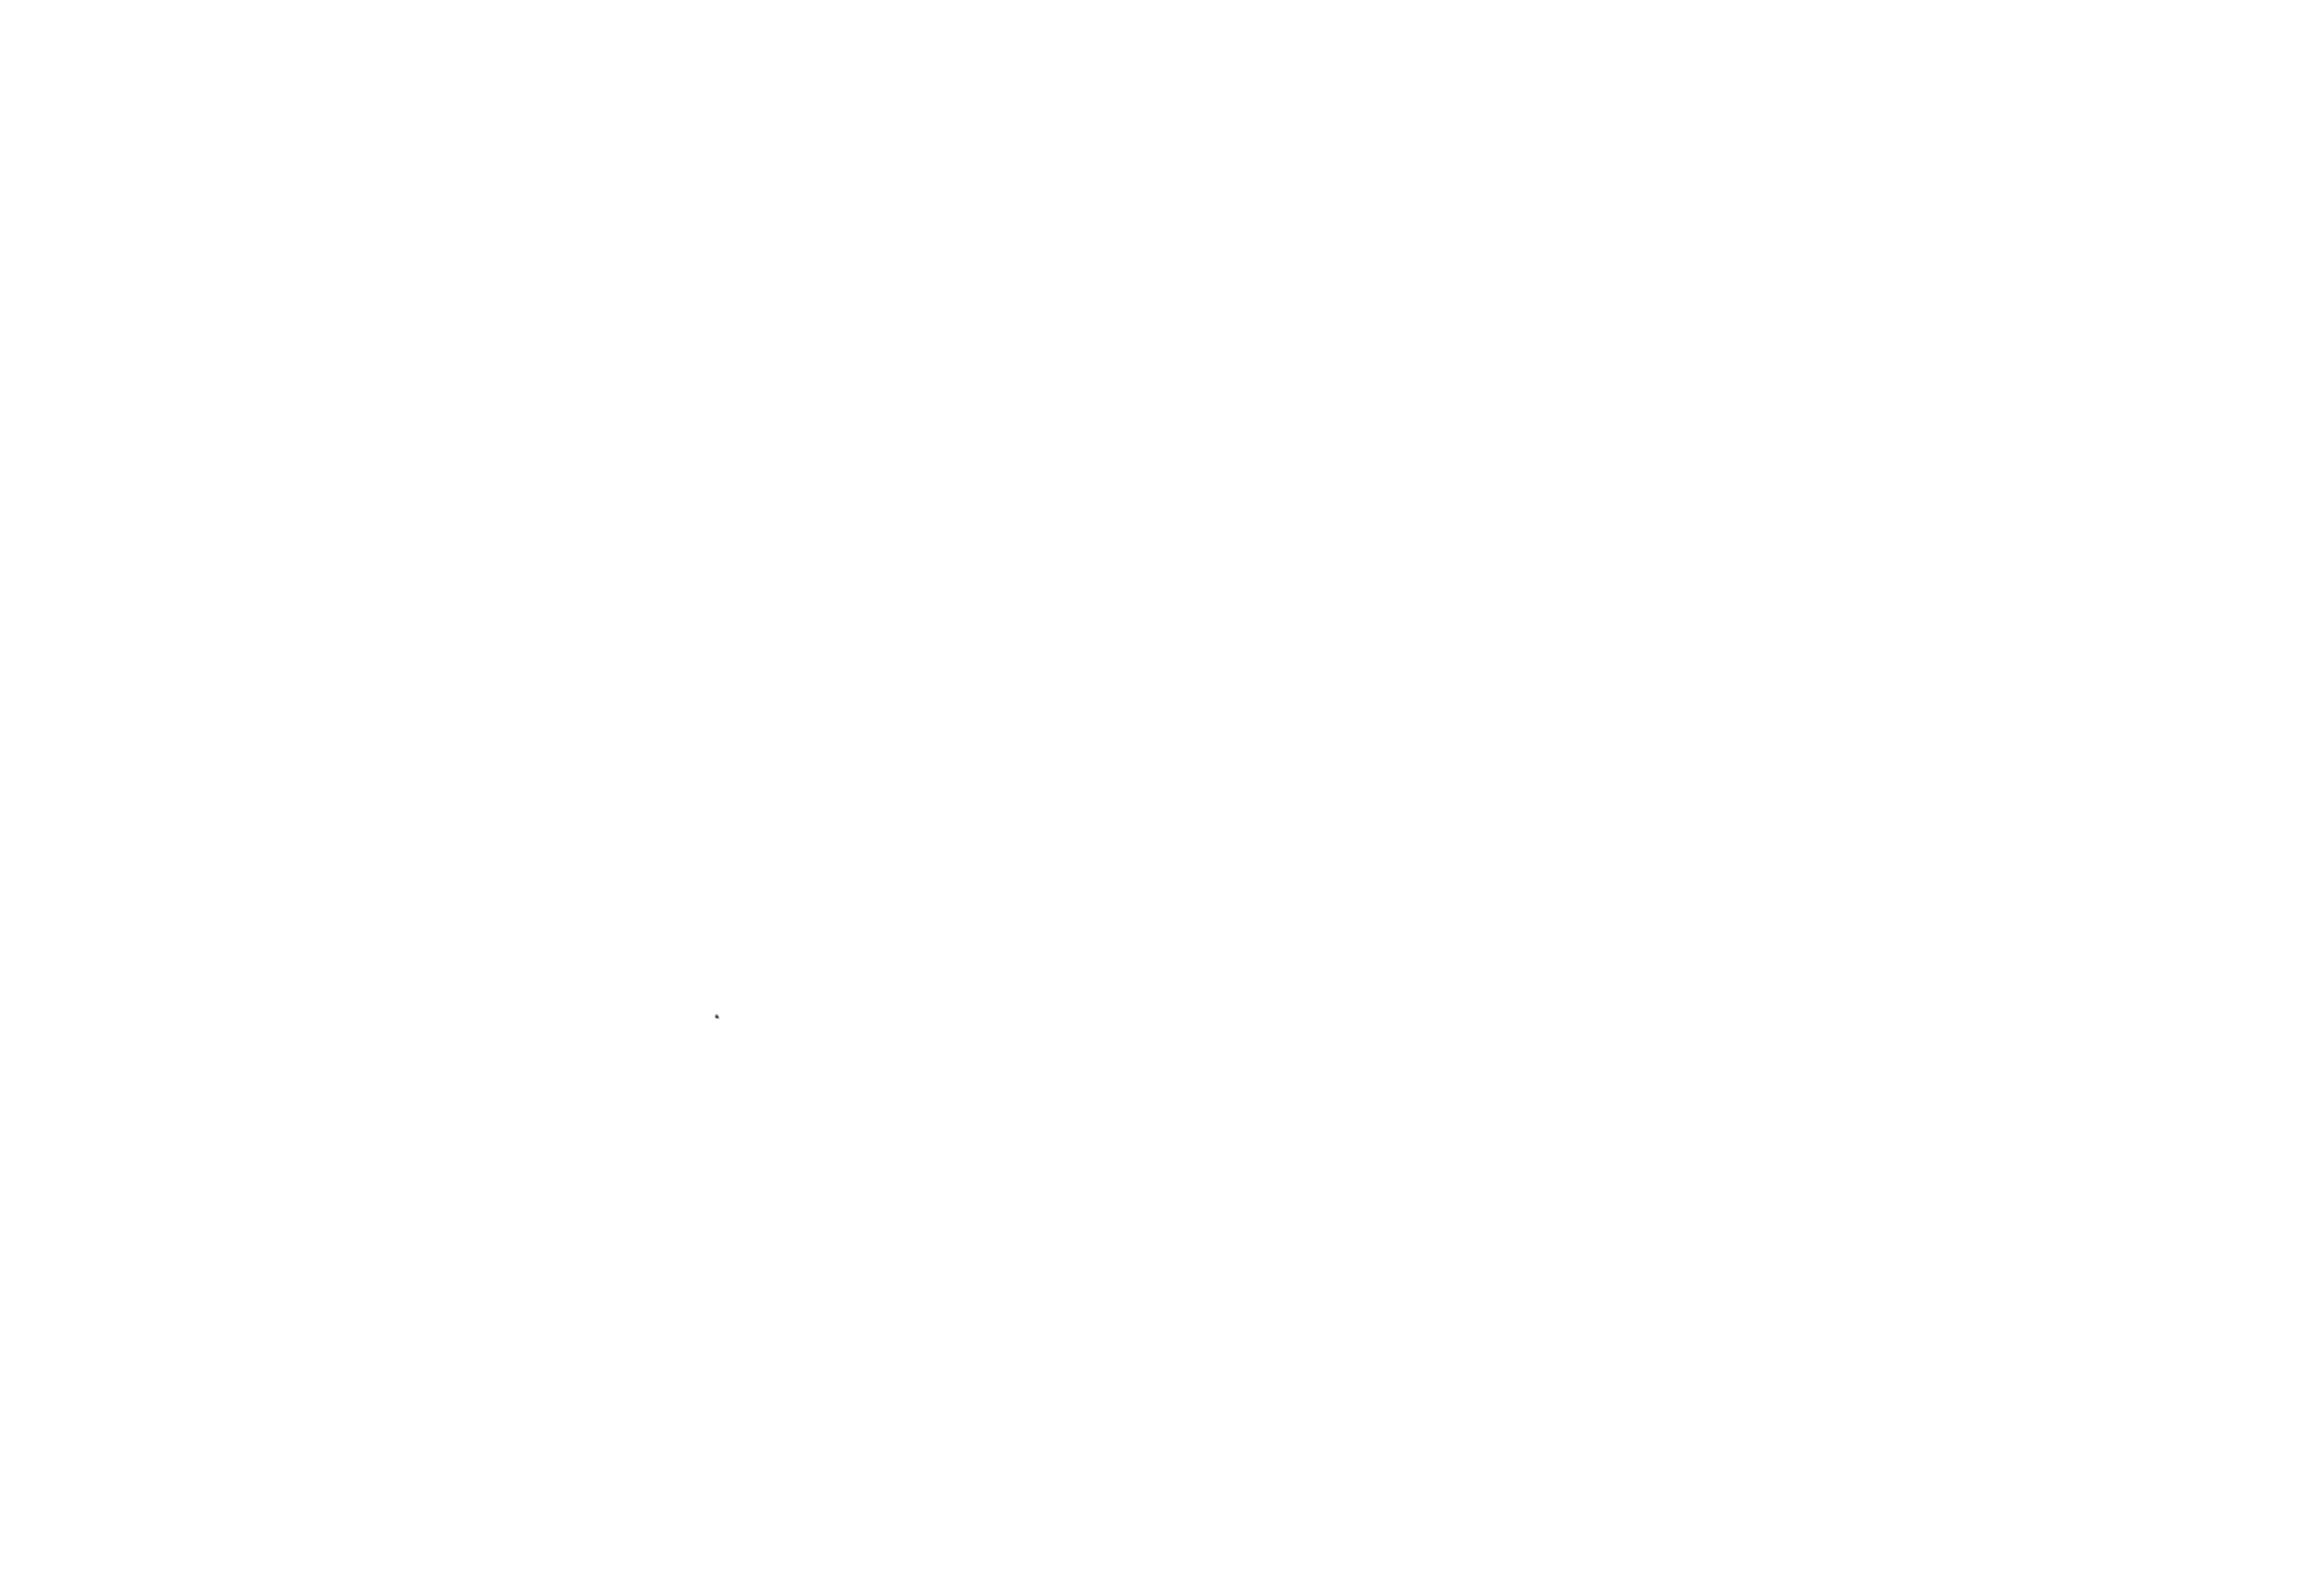 Lift Off Sessions 2019 (white) Finalist